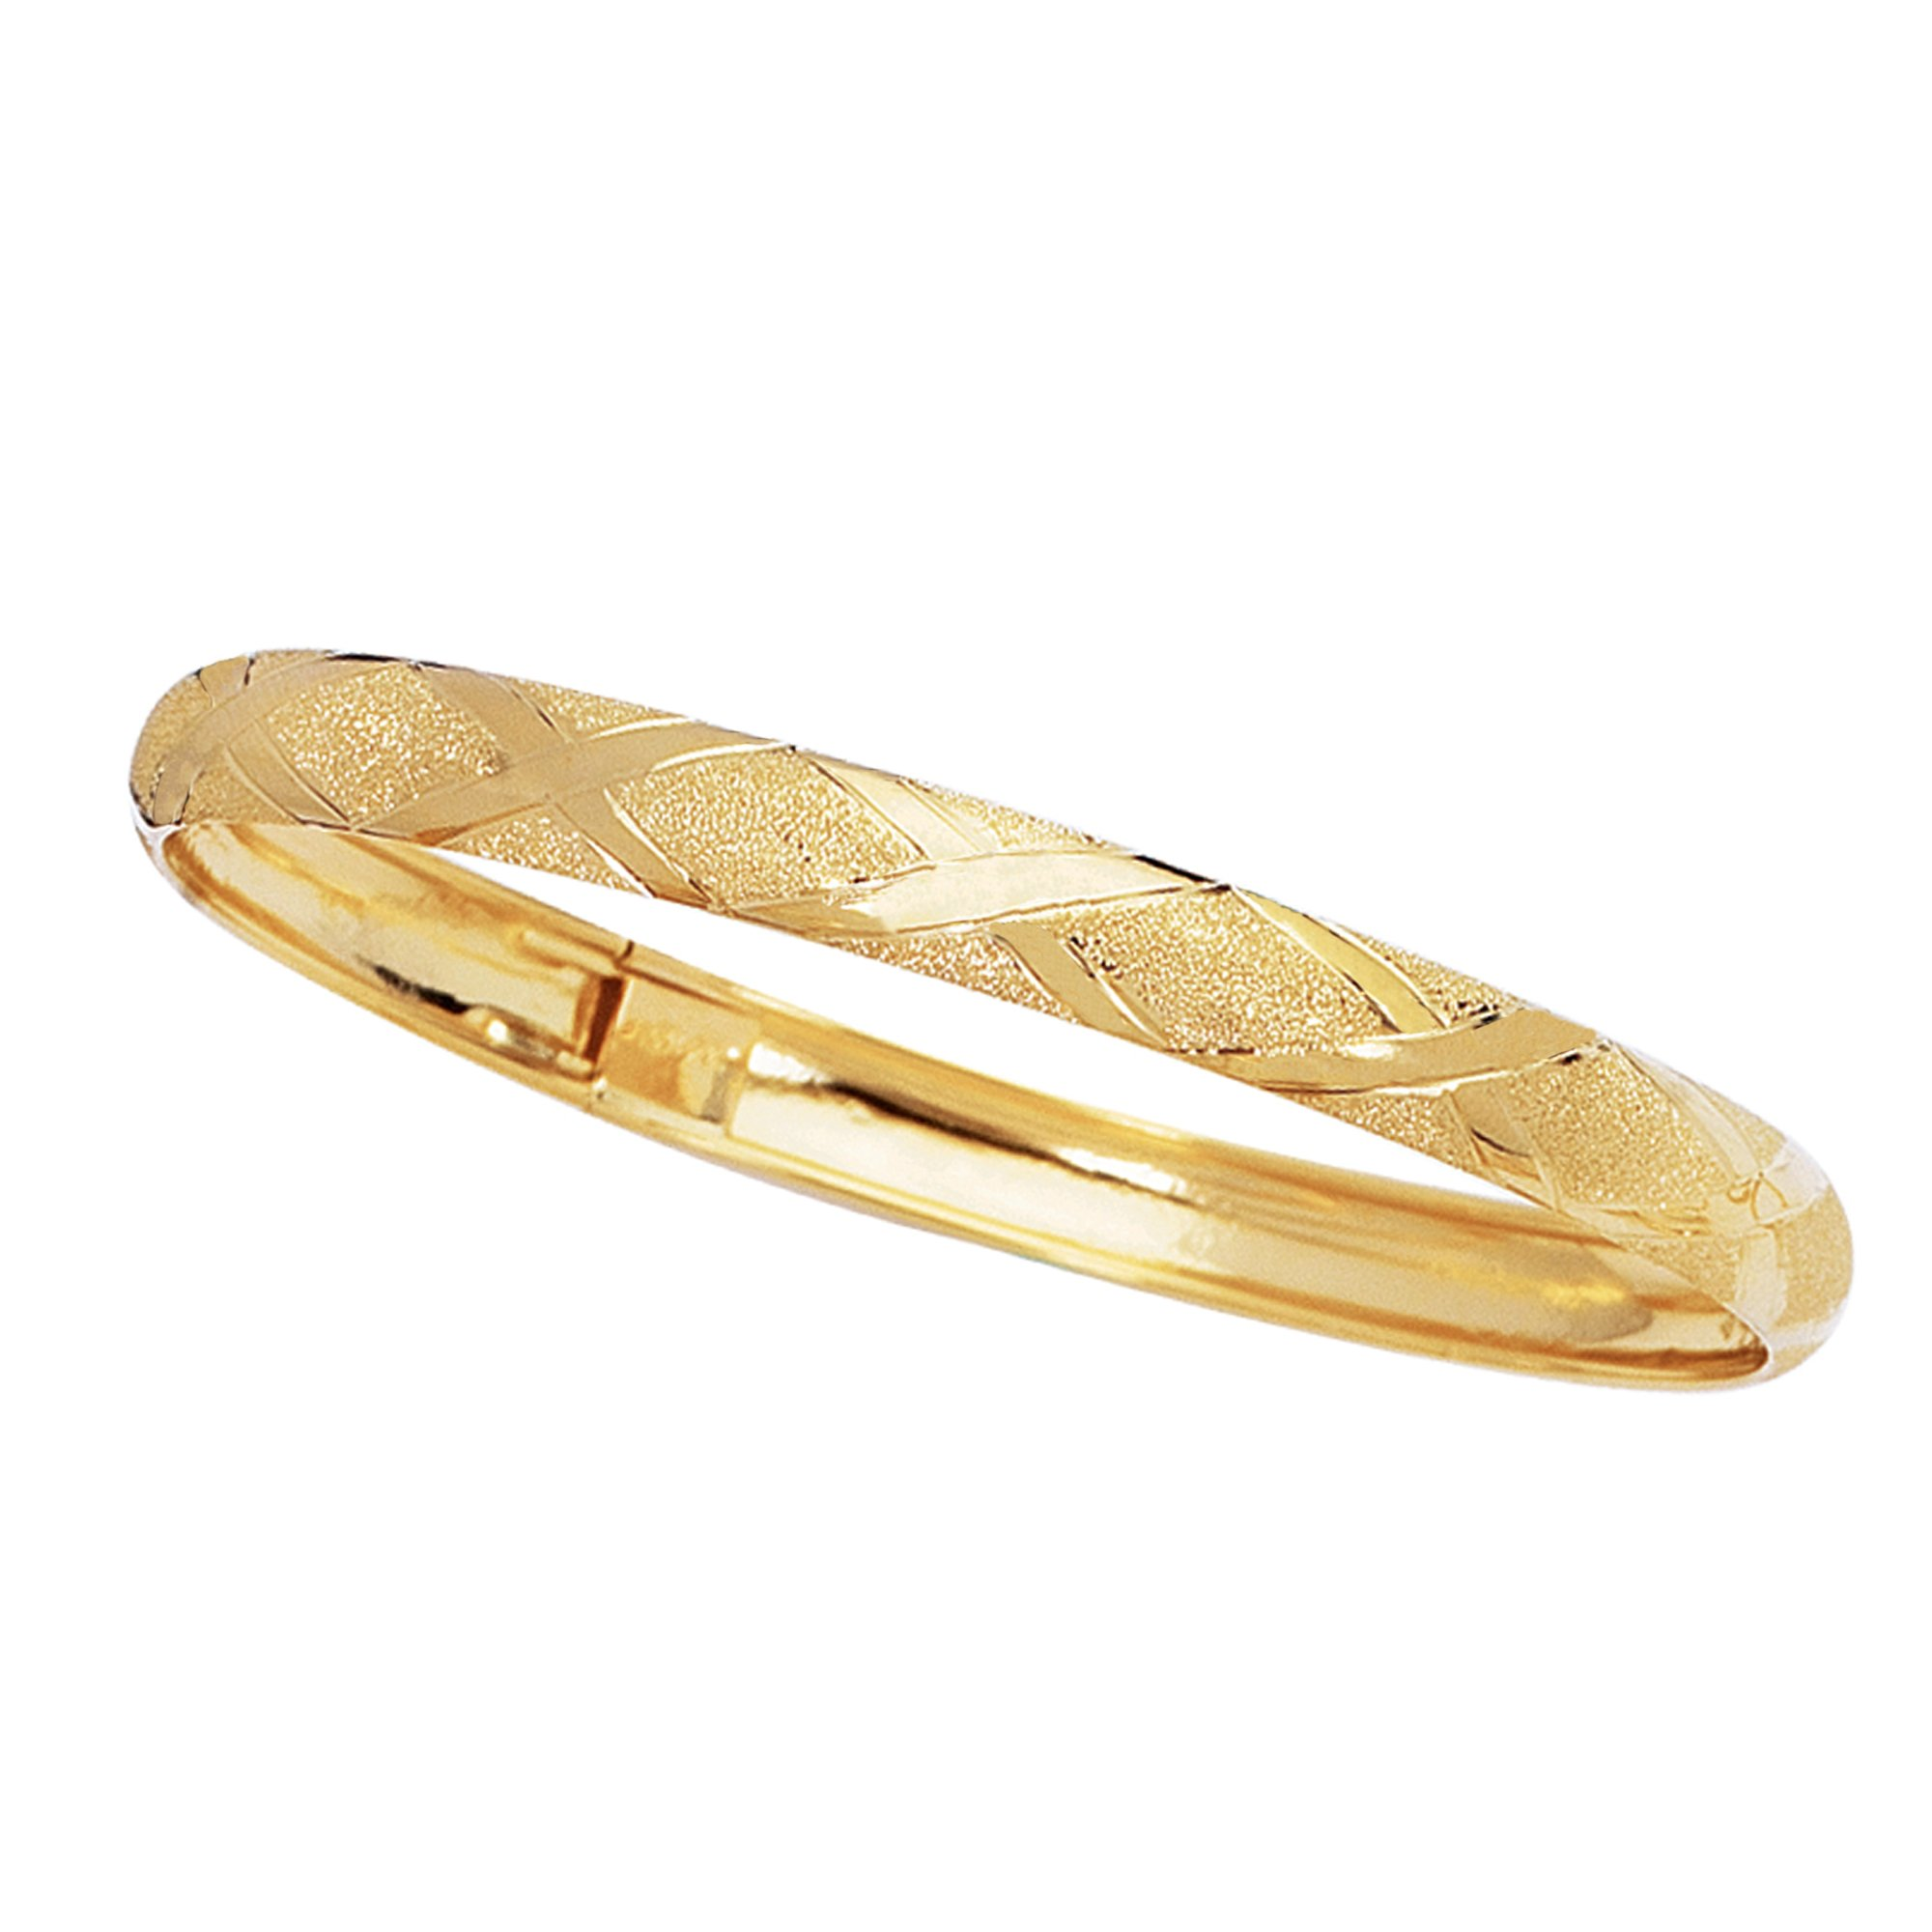 10k Yellow Gold Tubular Engraved Flex Bangle Bracelet 8 Inches